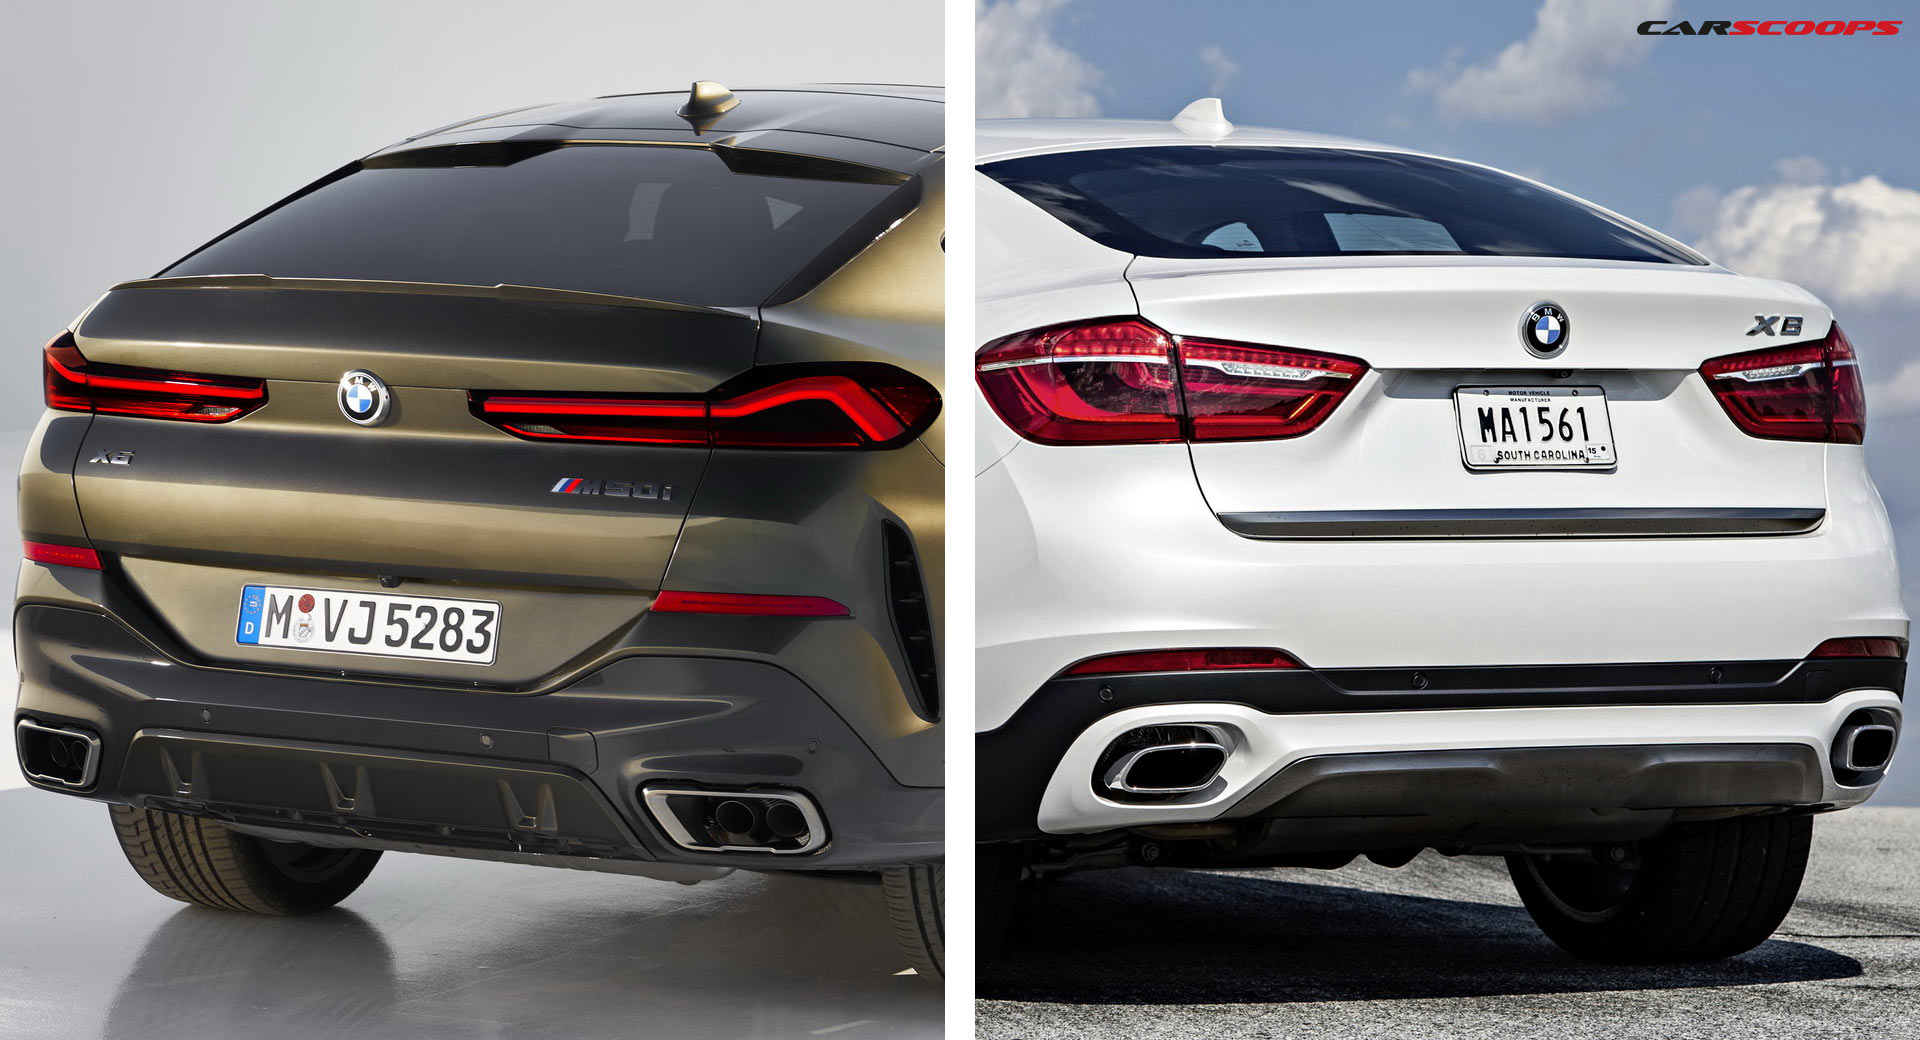 2020 Bmw X6 Versus Its Predecessor Should You Want To Upgrade